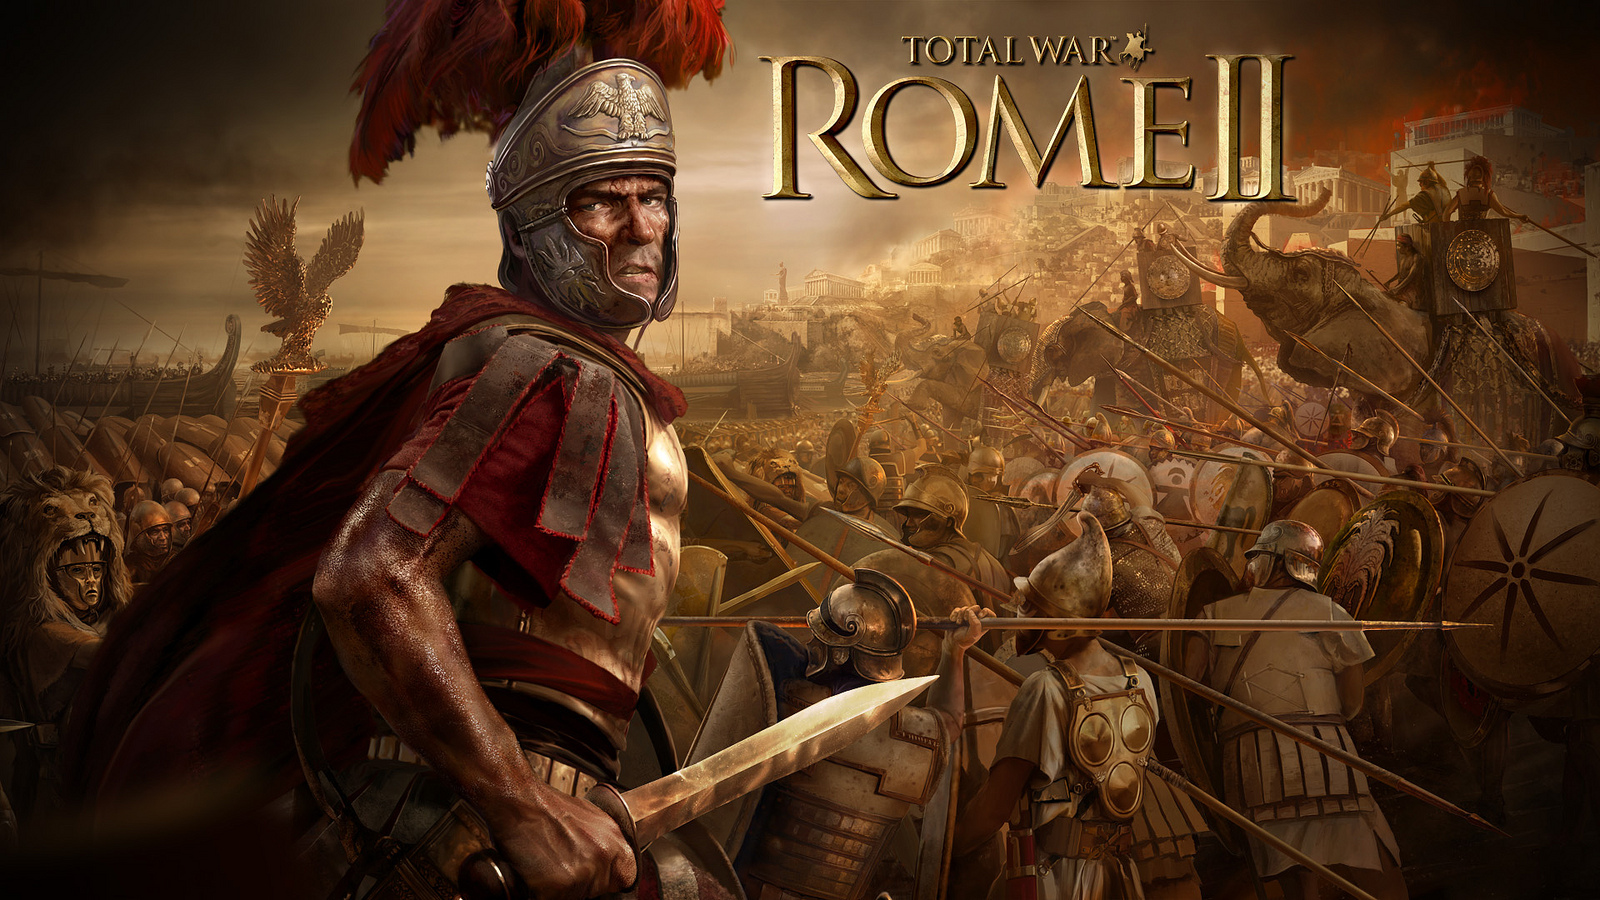 Rome II Total War by Creative Assembly